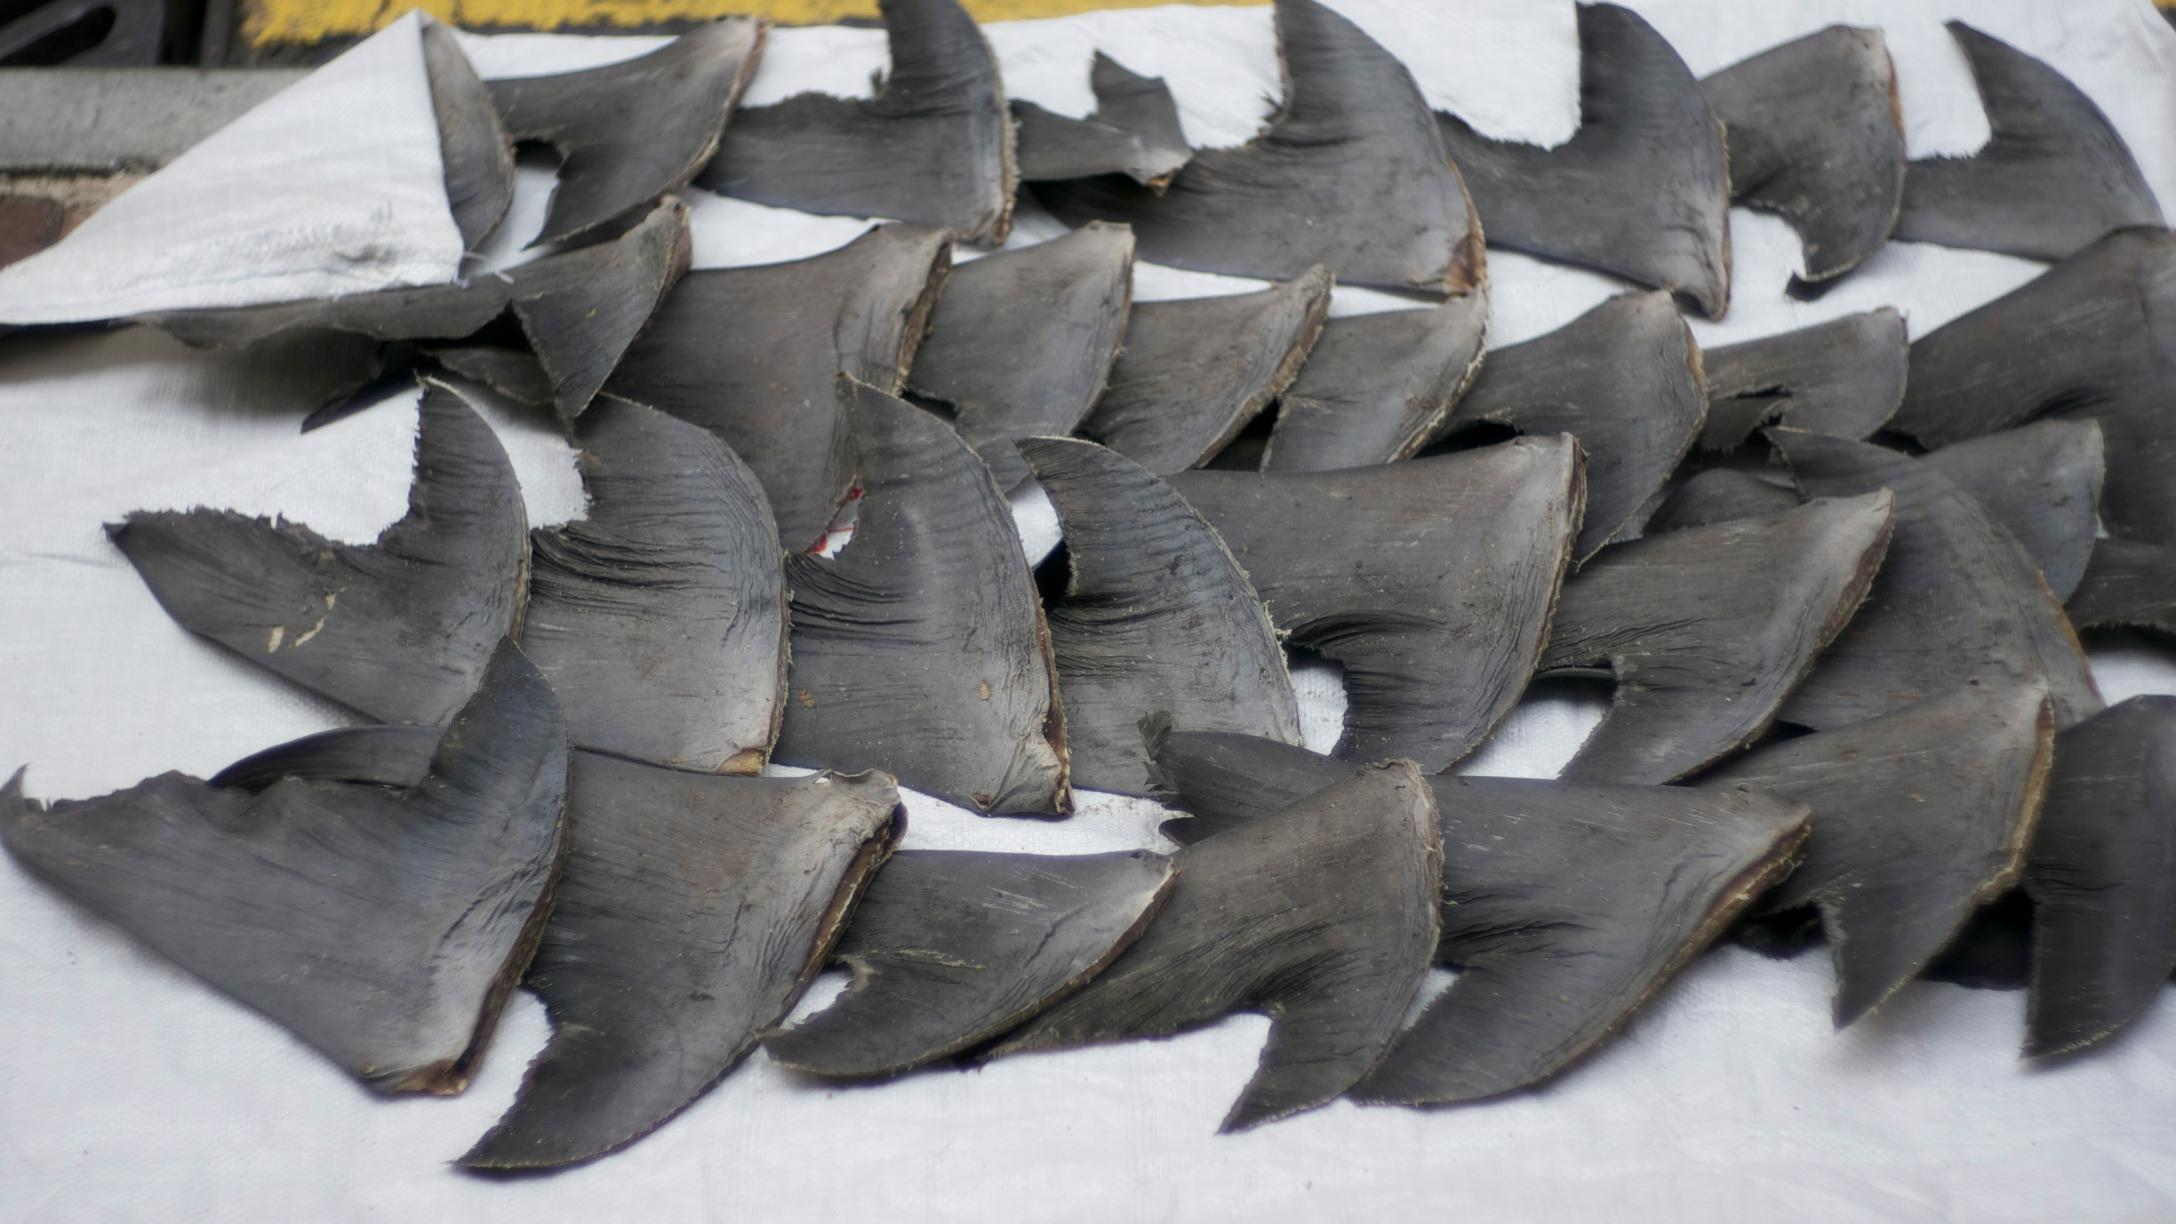 Figure 1. Shark fins have been cut from the main part of body, drying in Macau, China (Wang, 2011). Used under Creative Commons Attribution-NonCommercial-ShareAlike 2.0 Generic license (http://creativecommons.org/licenses/by-nc-sa/2.0/)